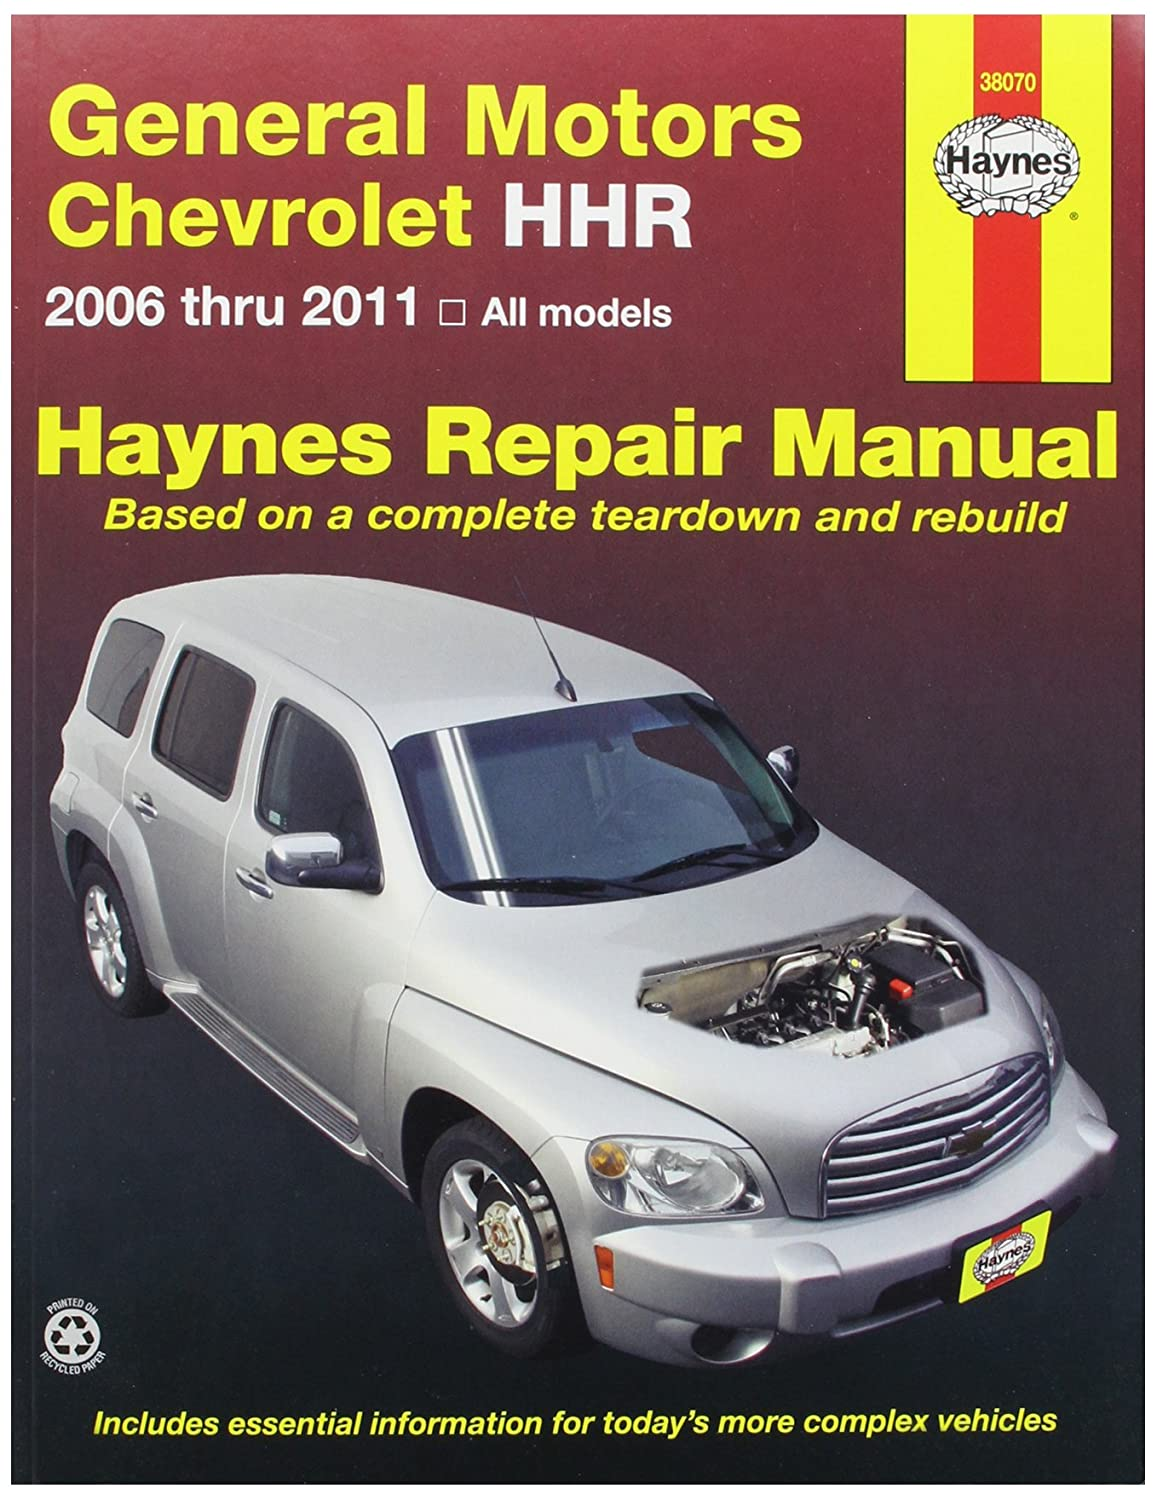 Amazon.com: Haynes Repair Manuals GM: Chevrolet HHR 2006-2011 (38070):  Automotive